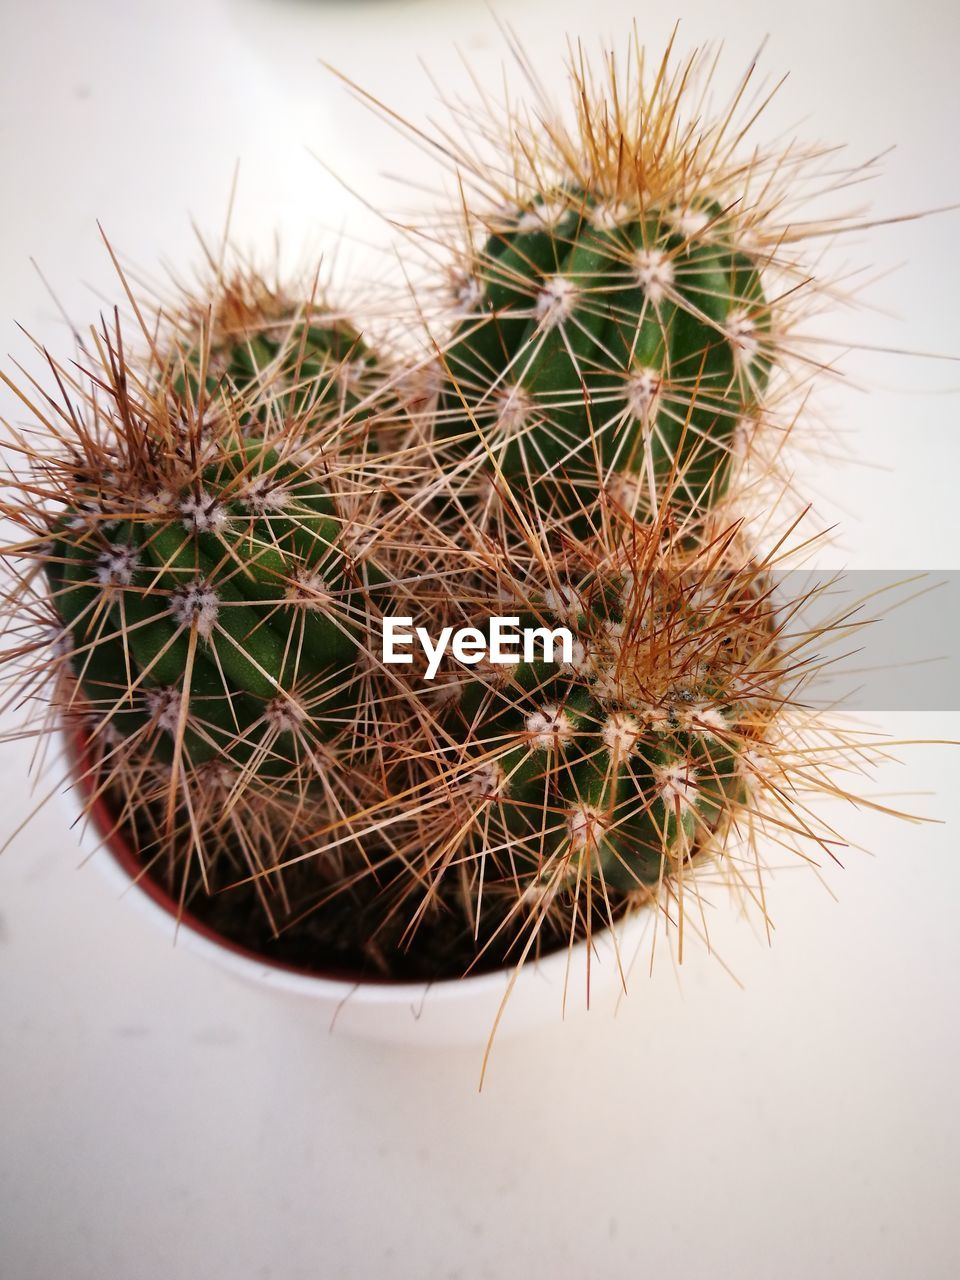 cactus, thorn, spiked, growth, nature, plant, danger, close-up, no people, focus on foreground, risk, beauty in nature, day, outdoors